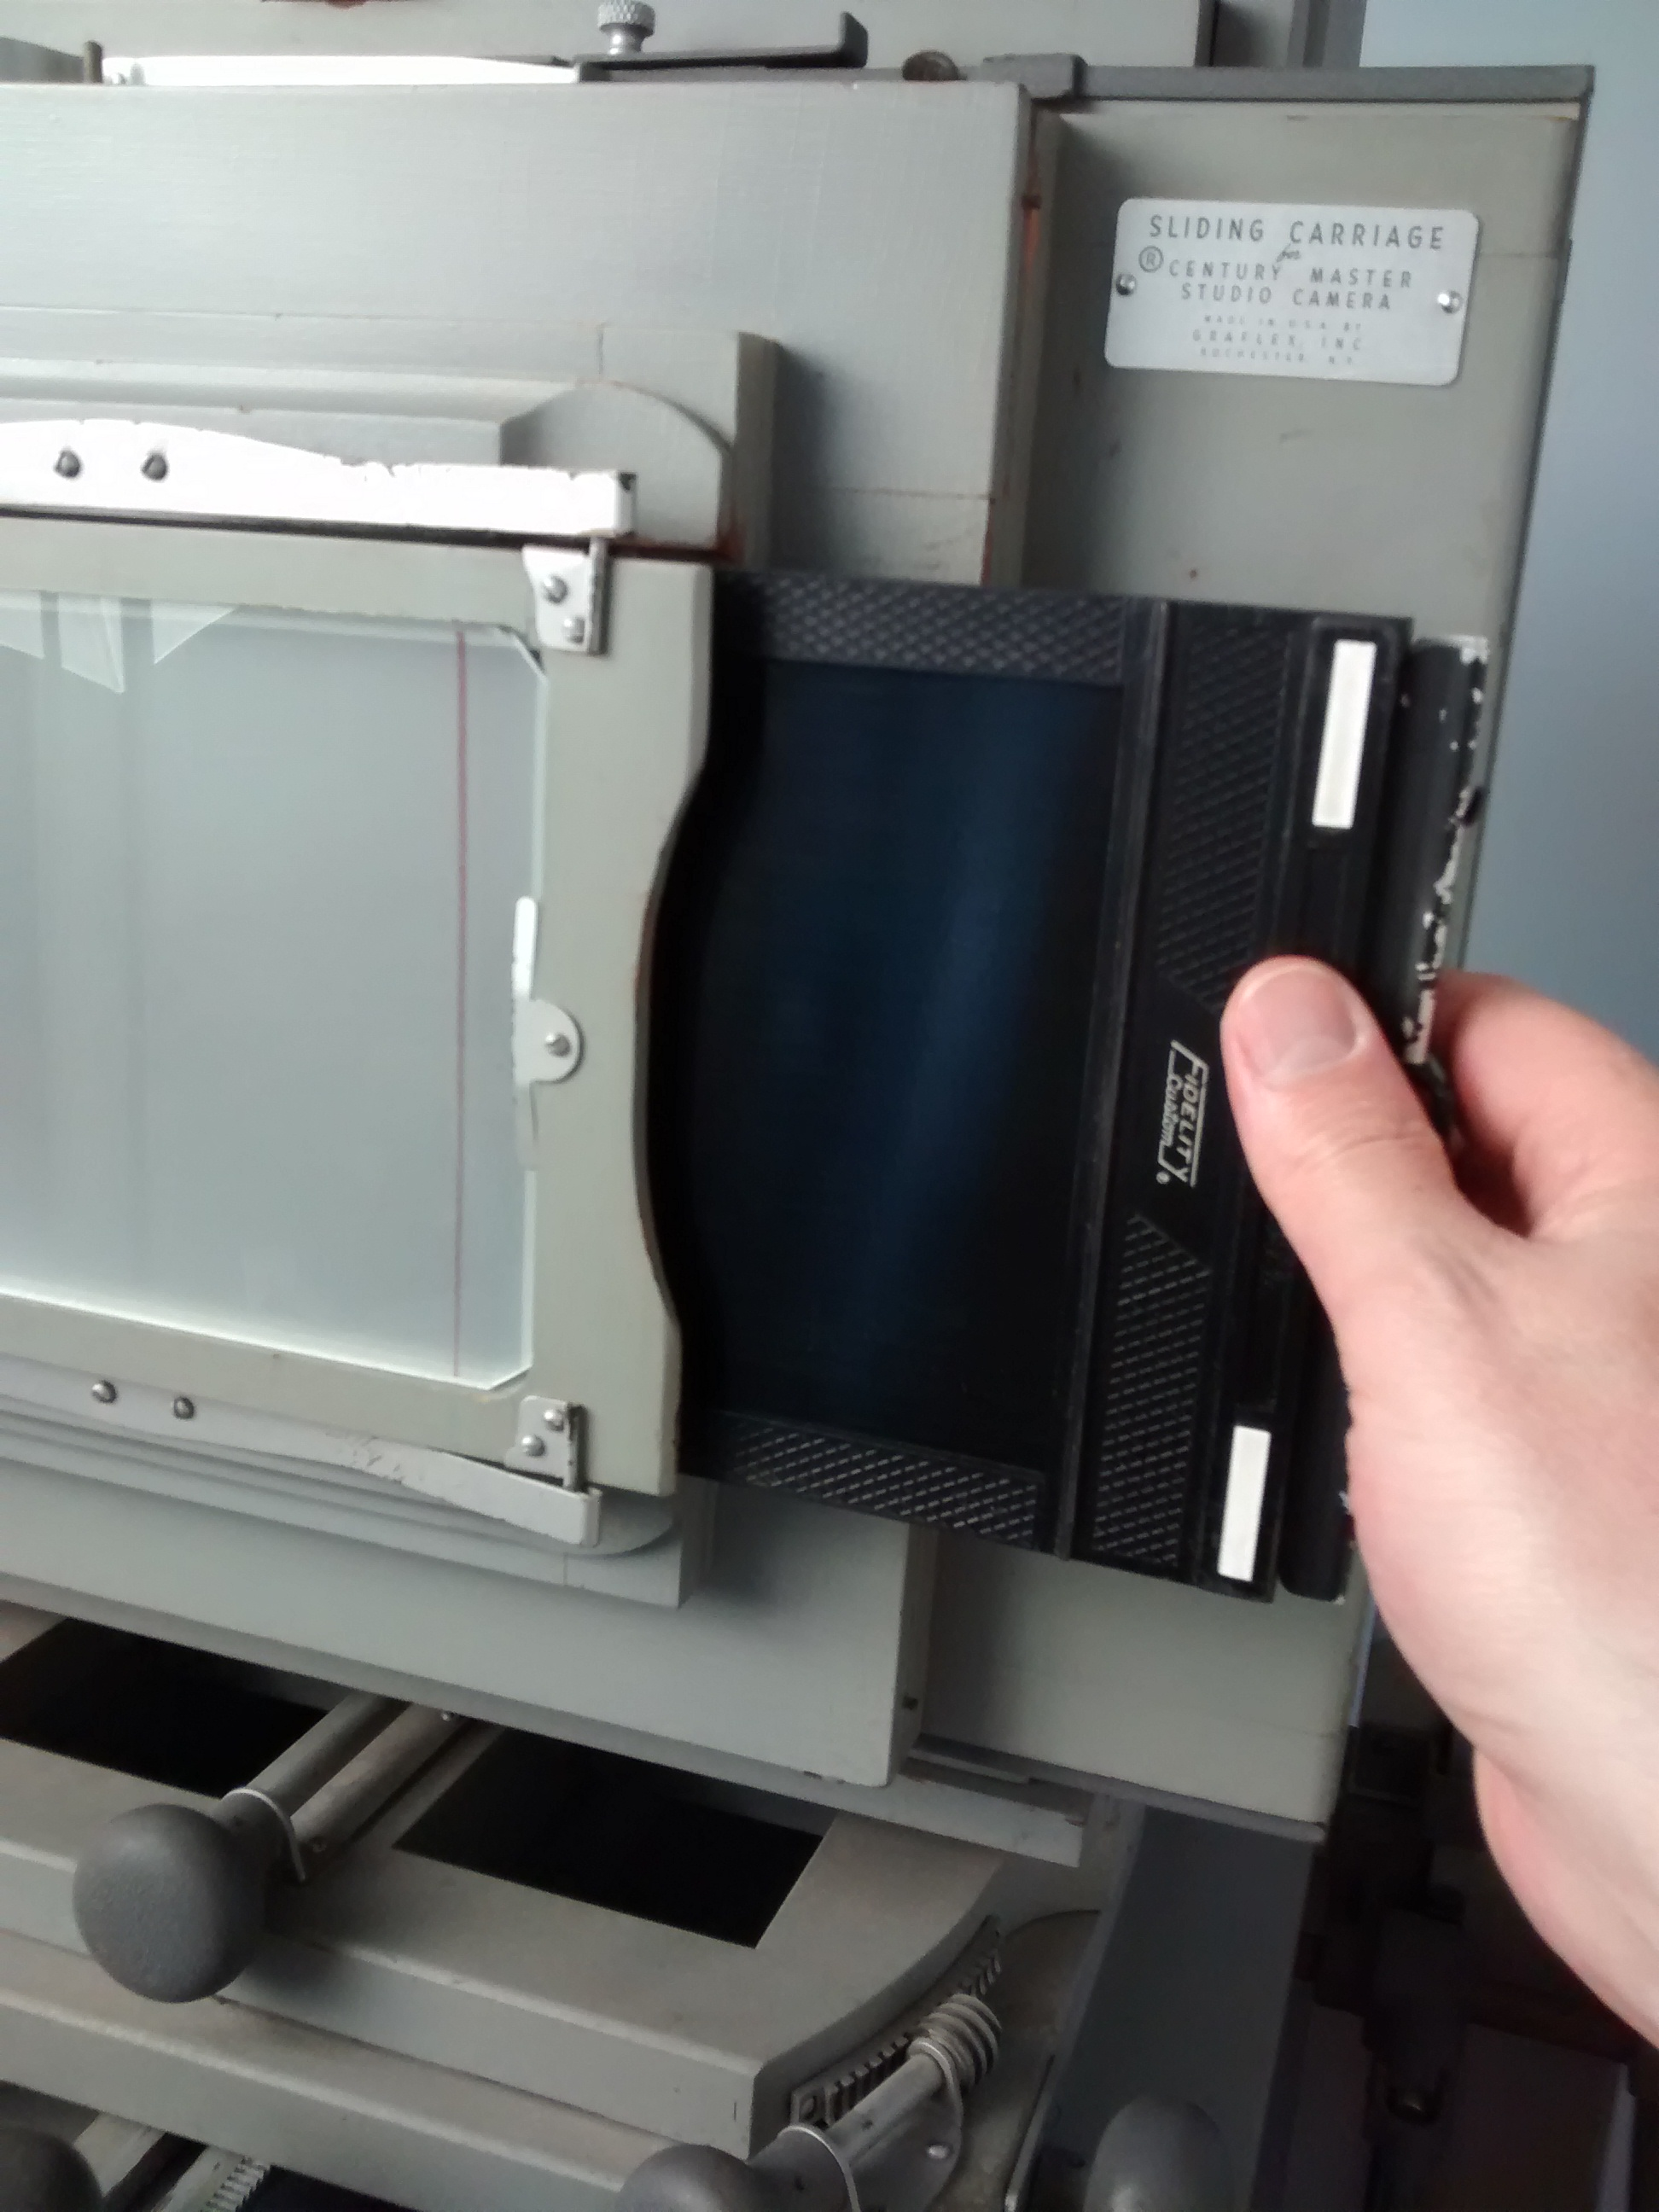 Inserting a 5x7 inch sheet film holder into the spring back of a Graflex Century Master Studio Camera